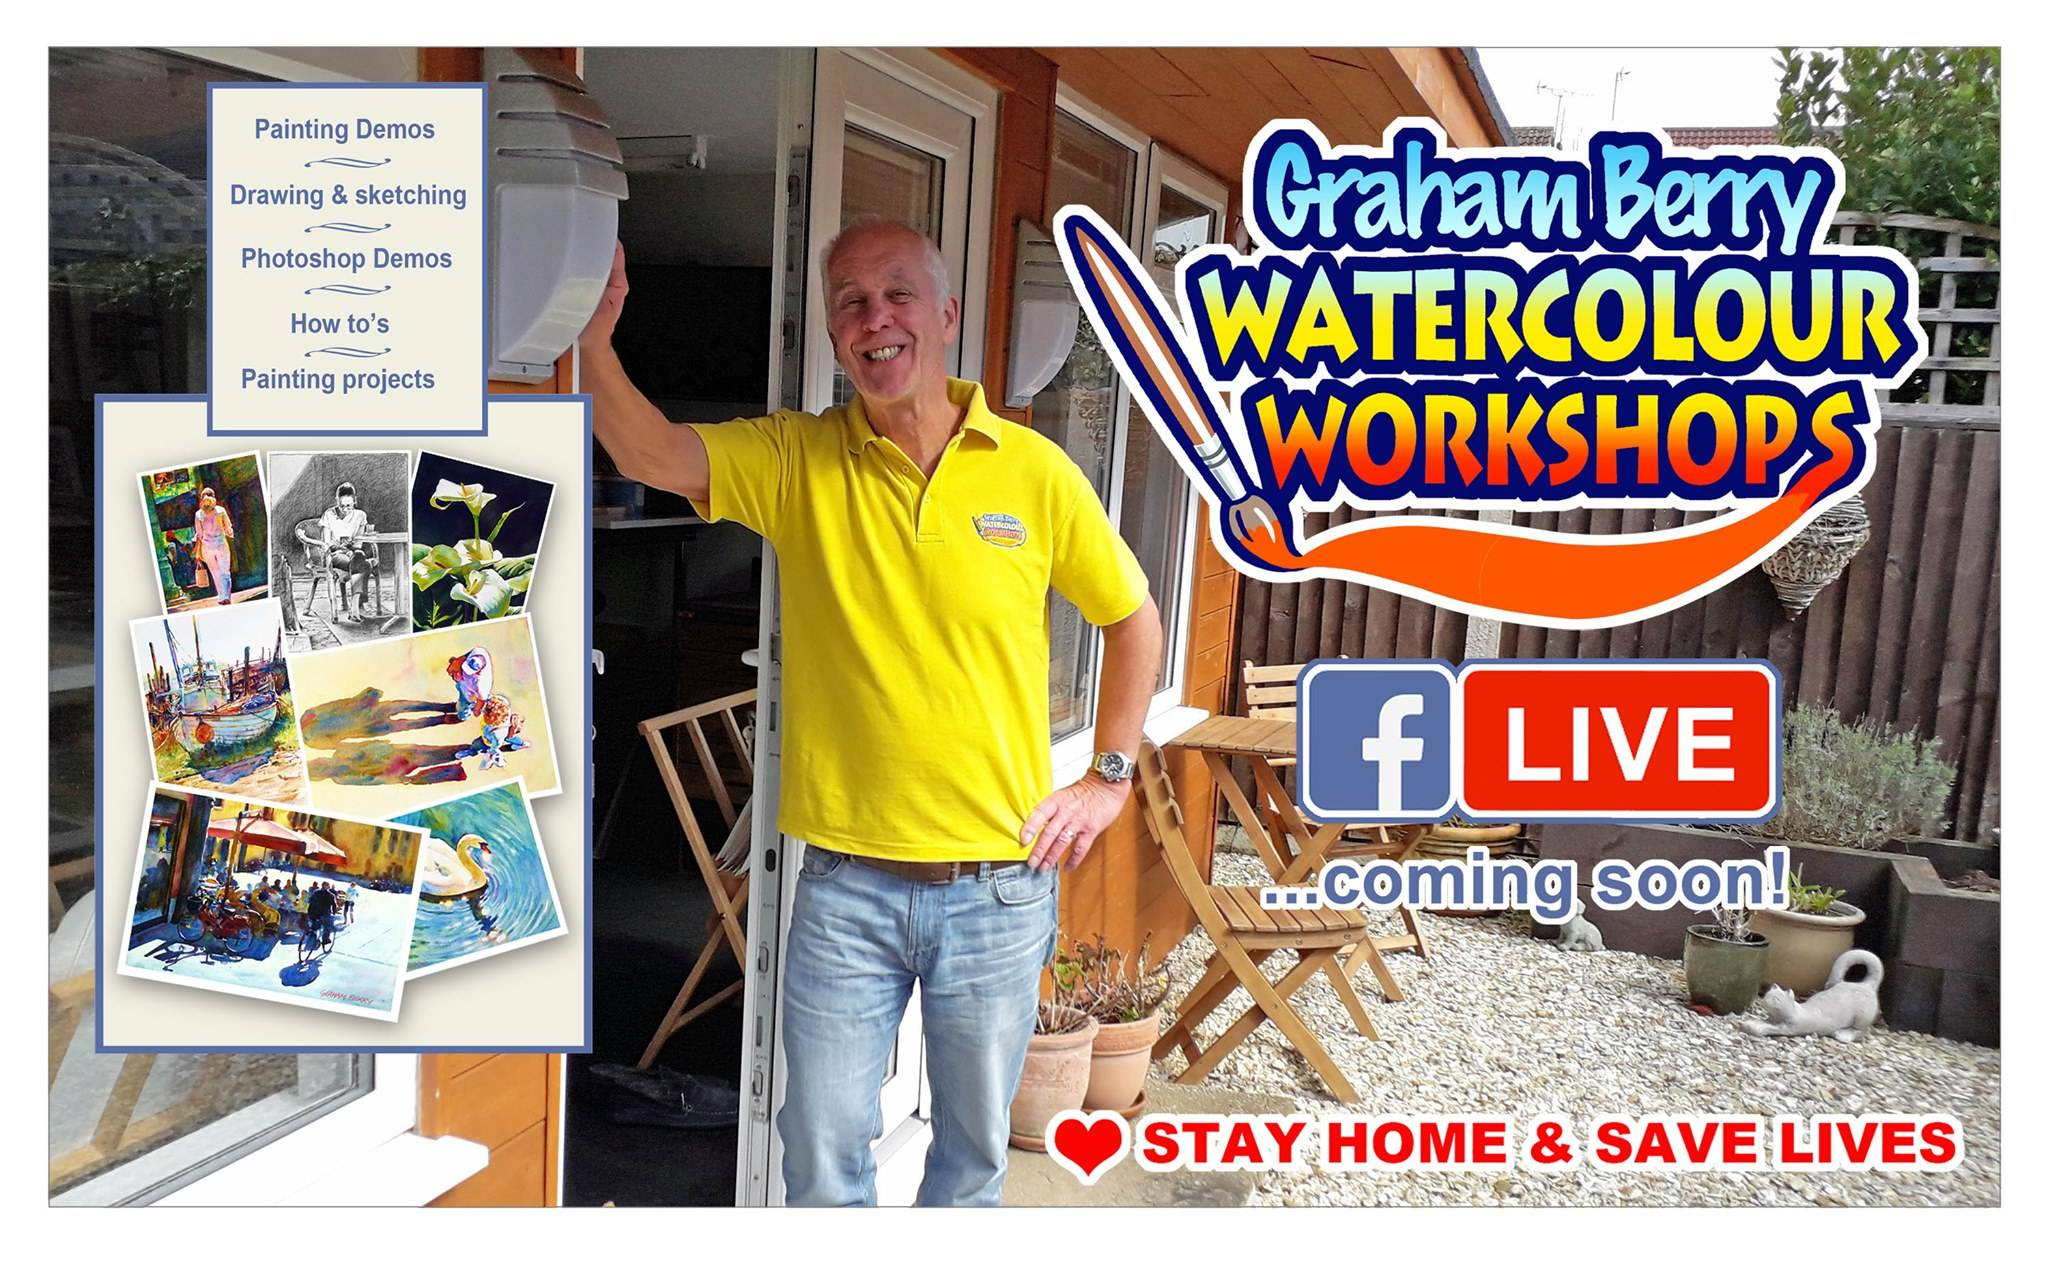 Online Watercolour workshops - Graham Berry